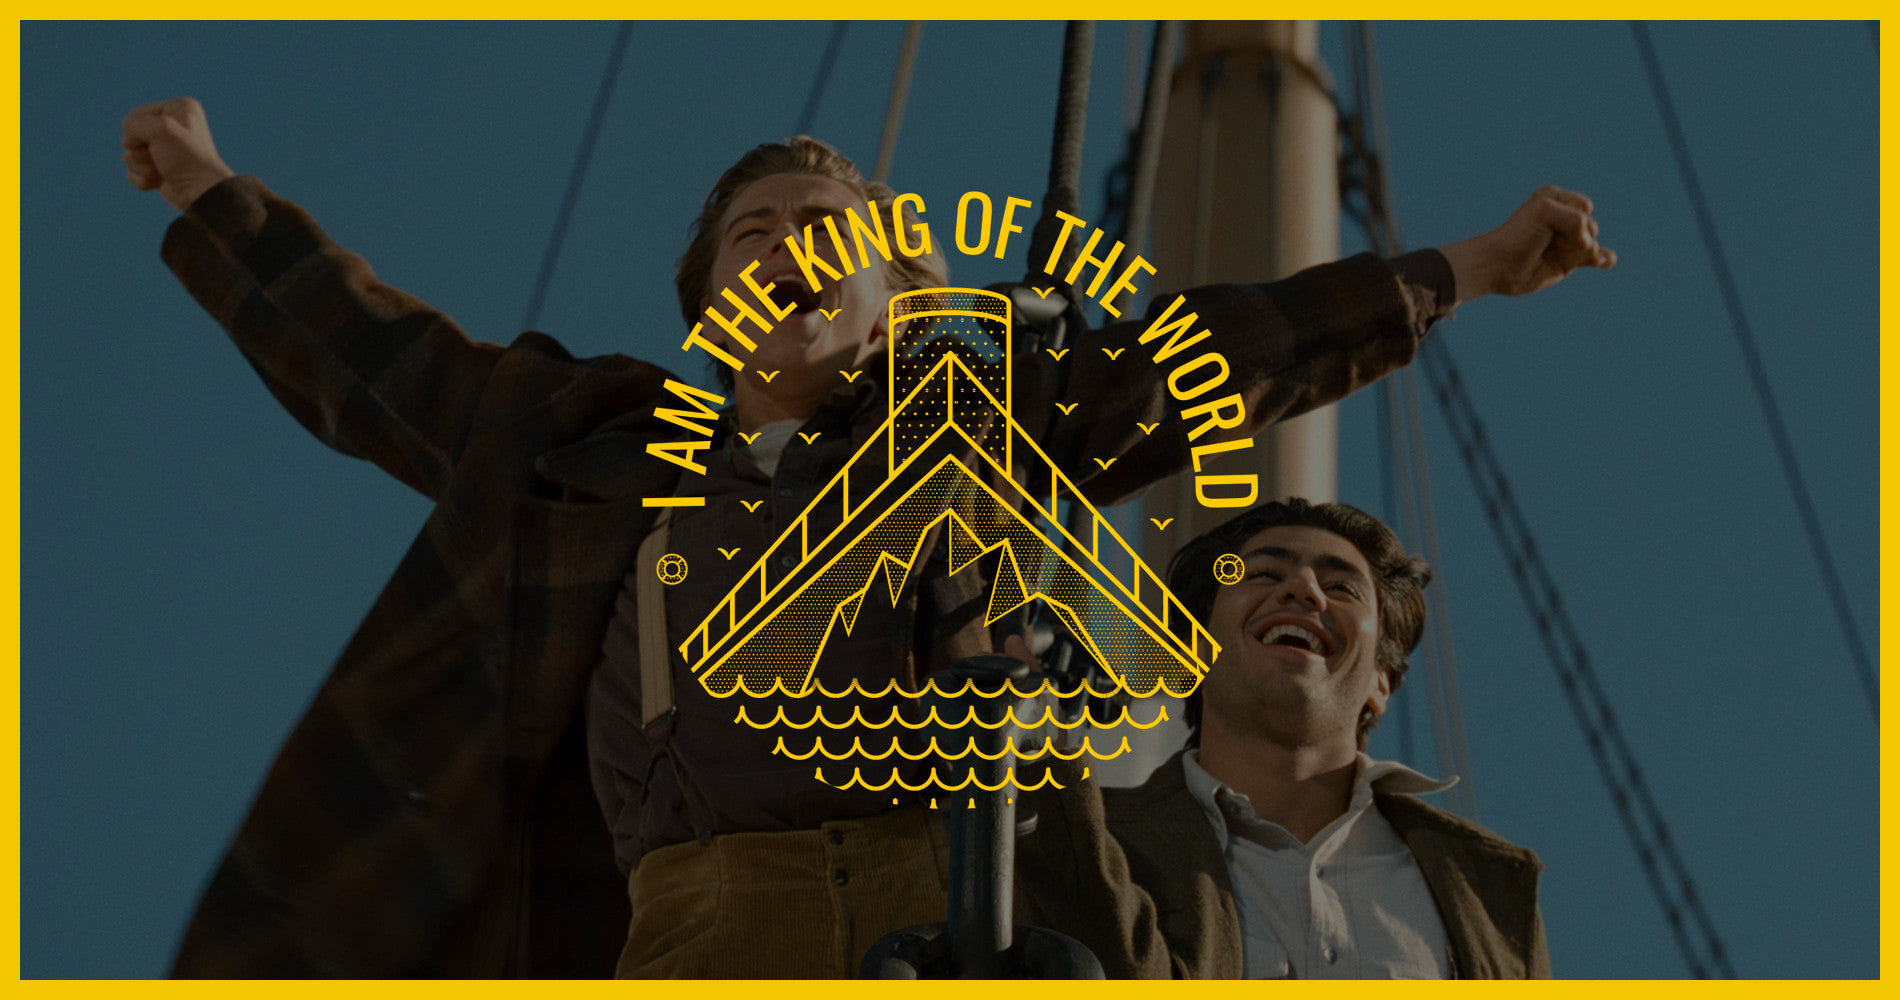 10 quotes from Titanic that will take you on the journey of true love